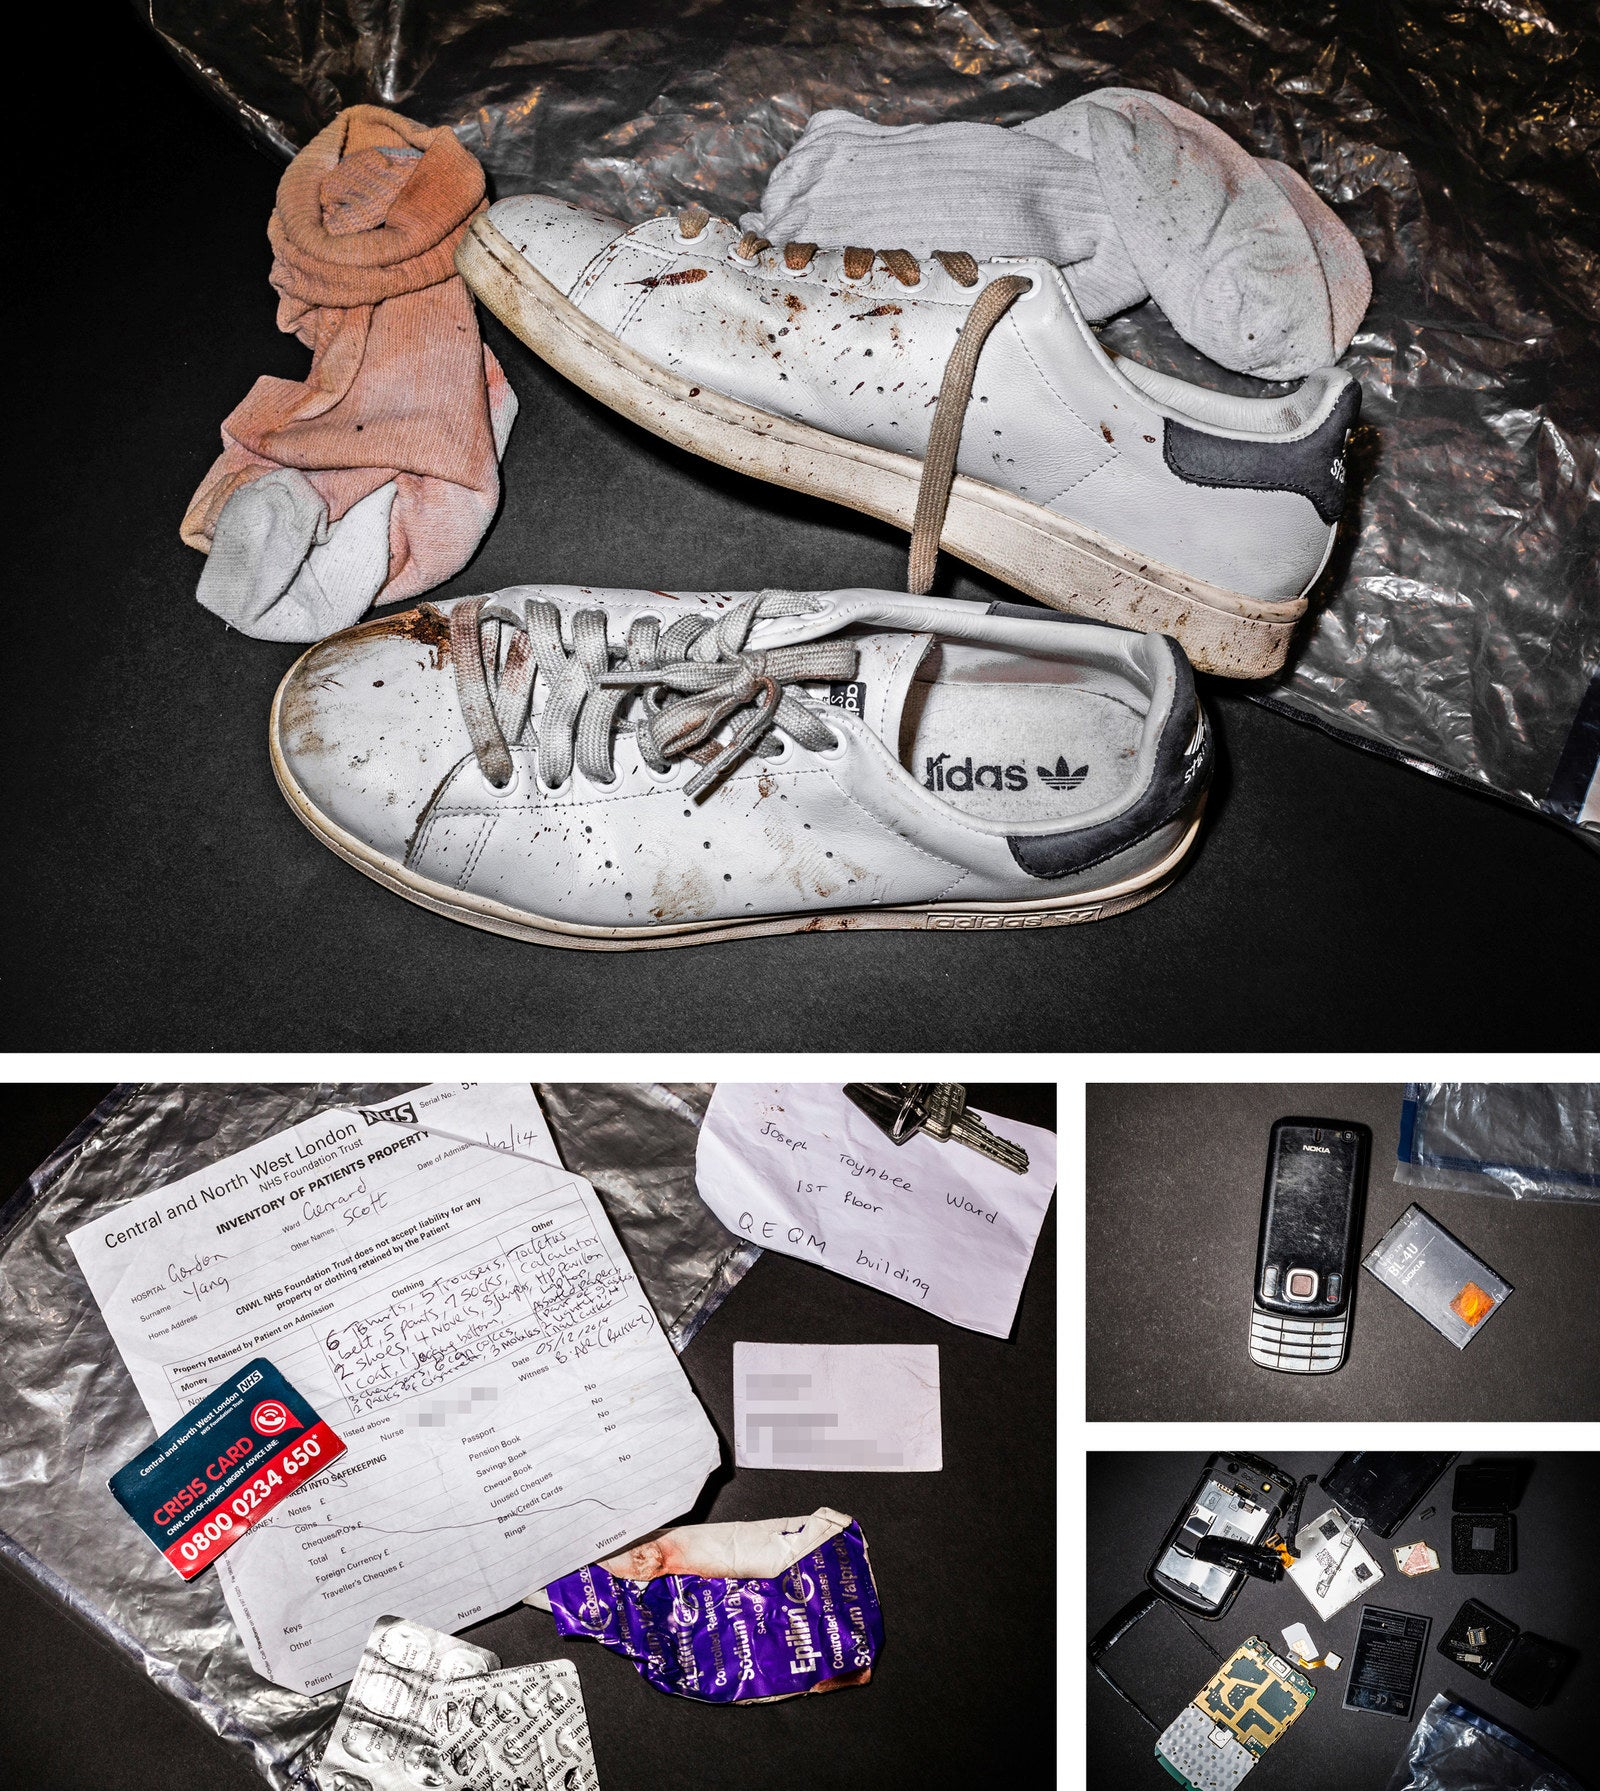 Evidence from the scene of Young's death, obtained by BuzzFeed News – including the phones in his pocket when he fell.